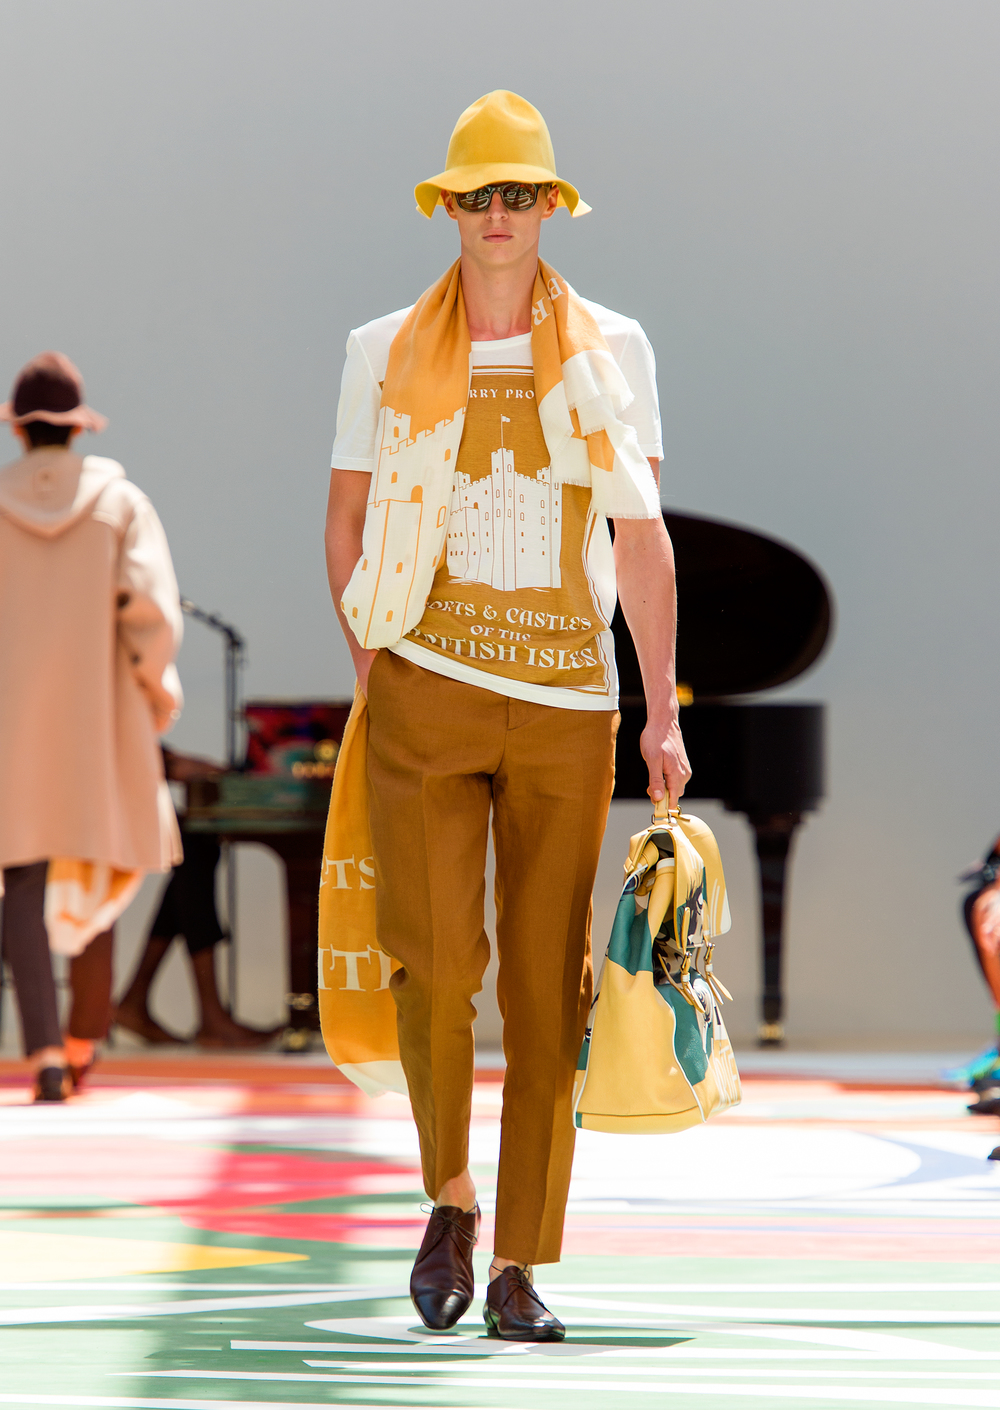 Burberry Prorsum Menswear Spring Summer 2015 Collection - Look 20.jpg